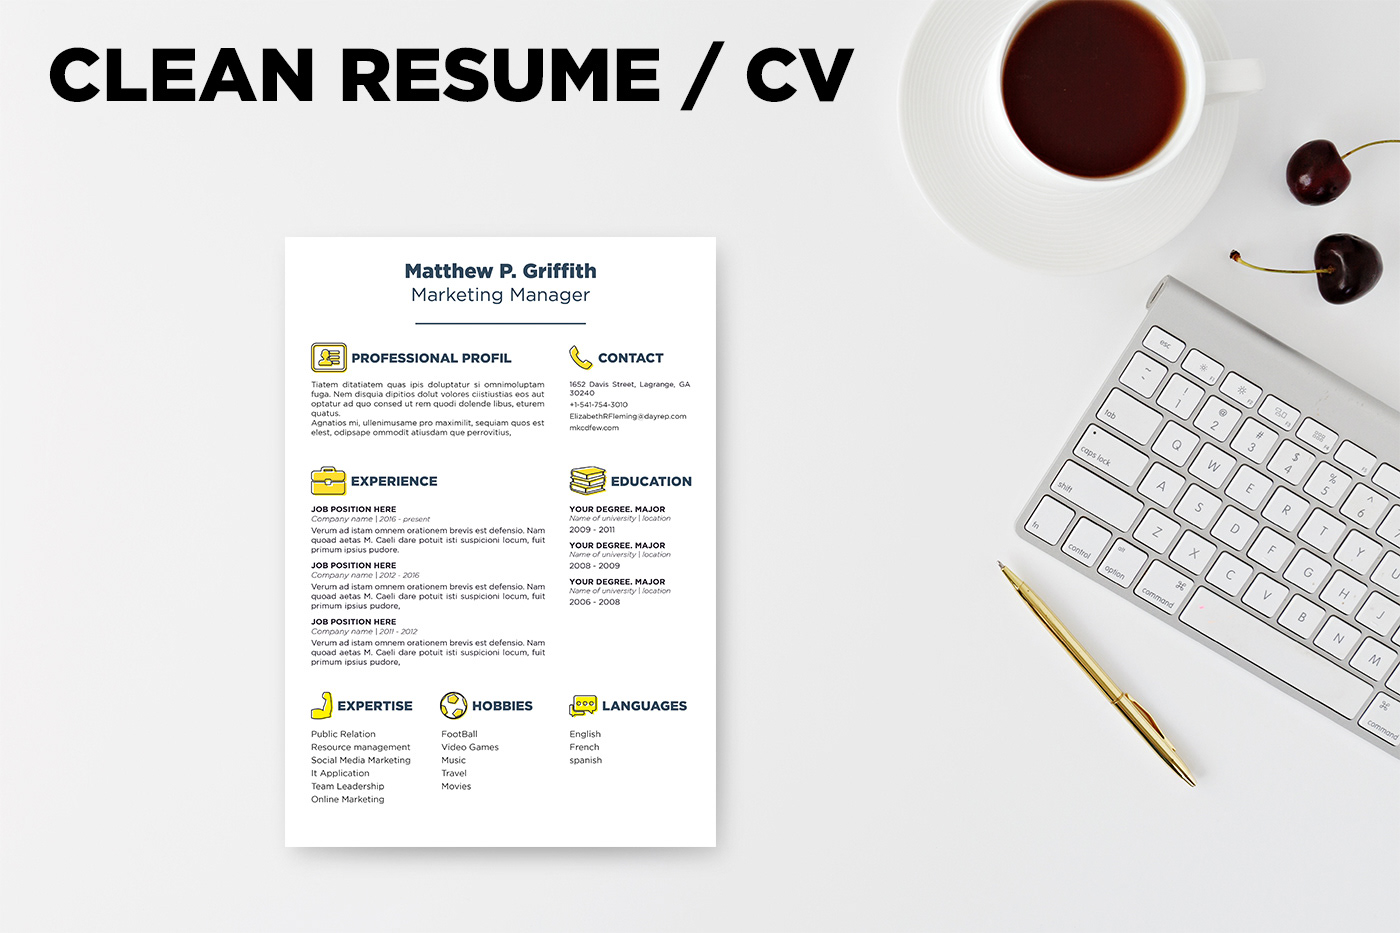 Free-Resume-CV-Template-&-Cover-Letter-in-Word-PSD-INDD-&-Ai-for-Marketing-Manager (3)